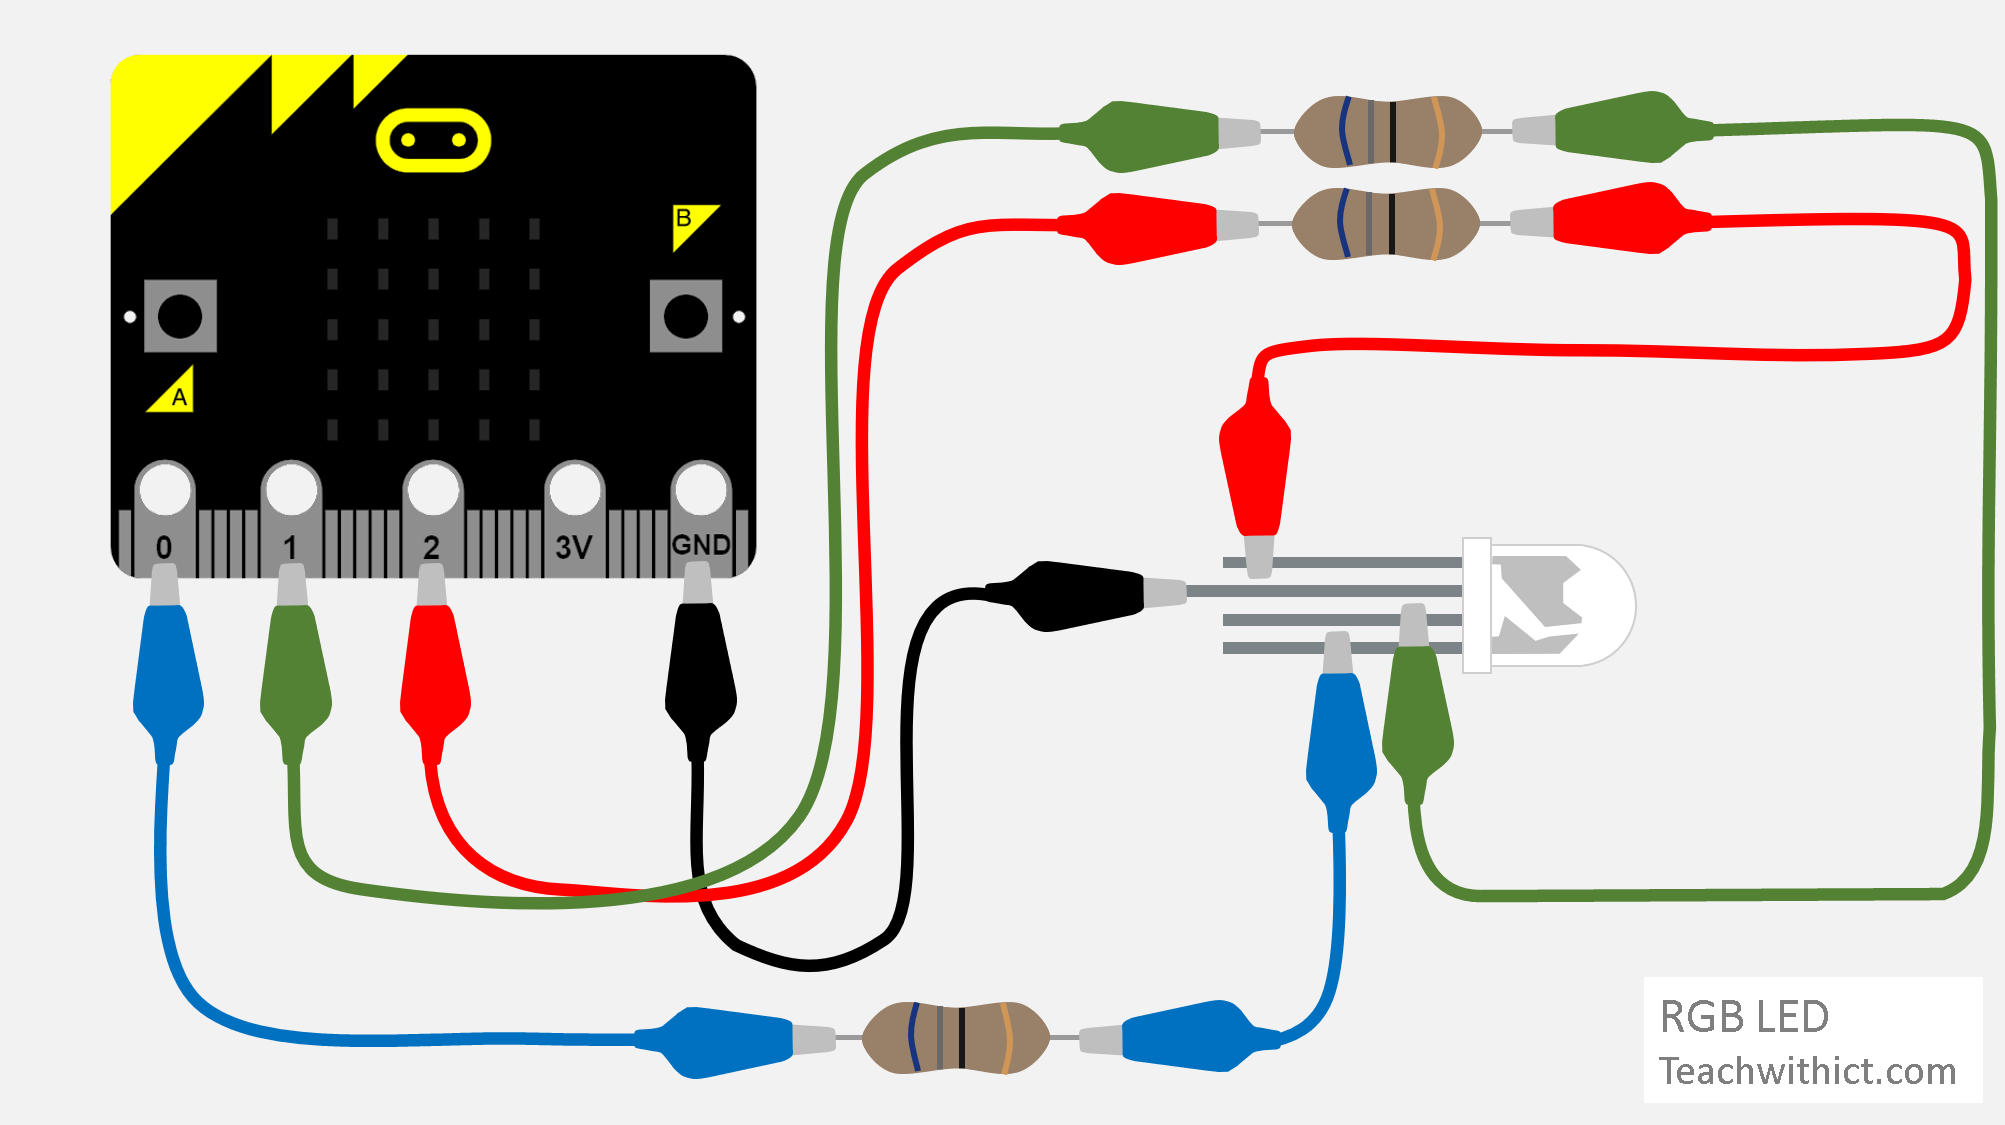 How To Connect An Rgb Led To A Bbc Micro Bit Rgb Led Arduino Arduino Projects